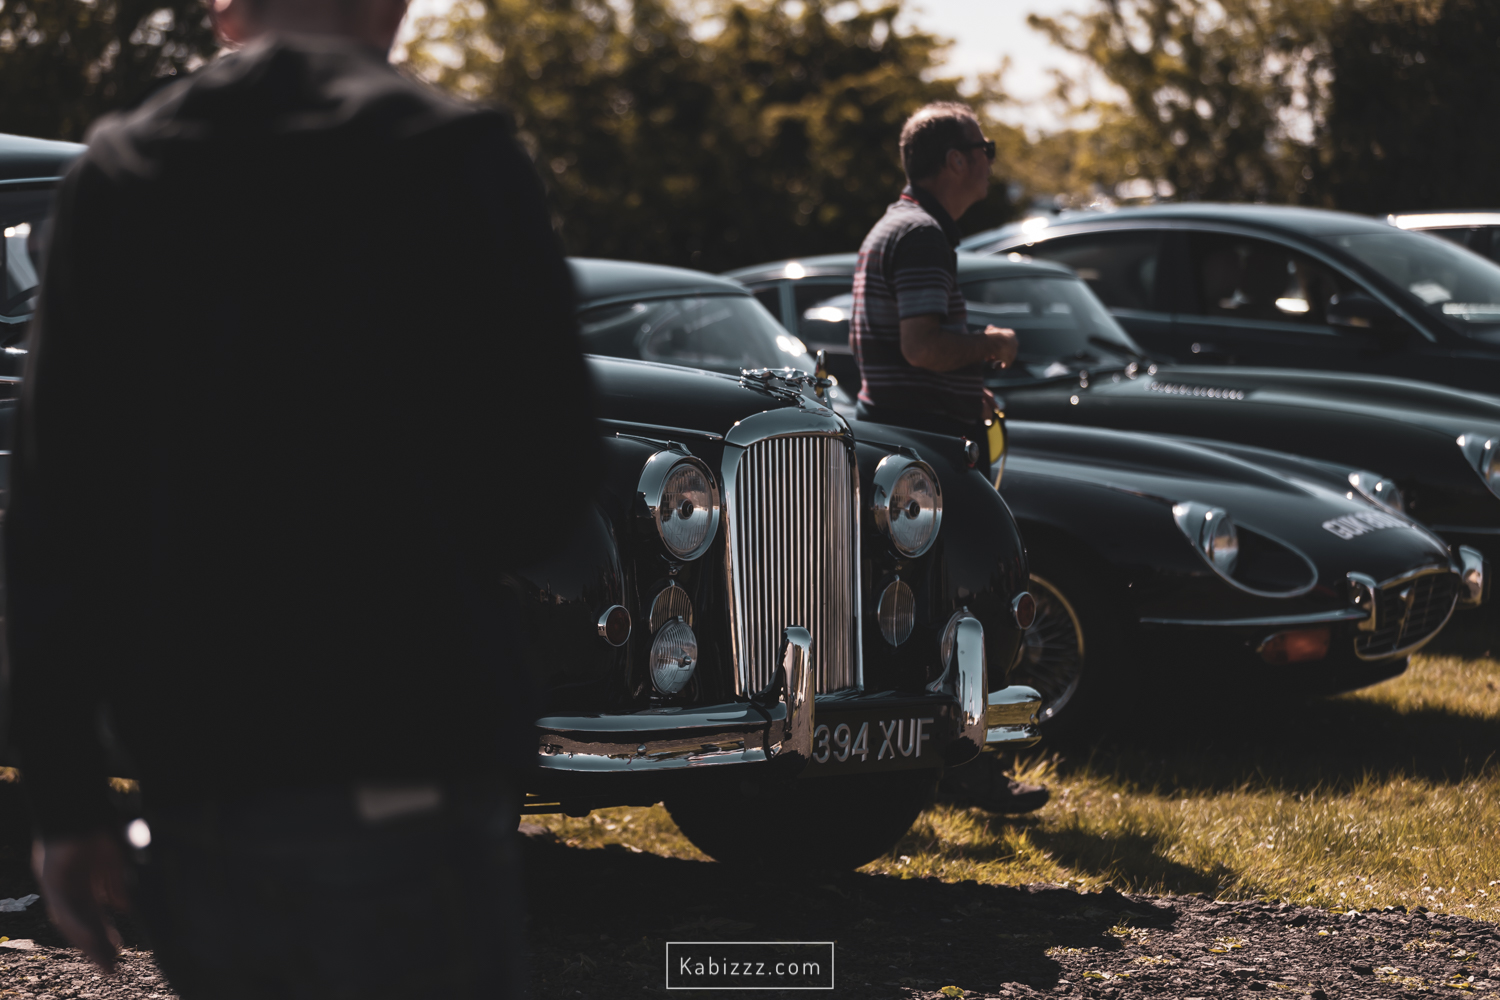 Kabizzz_Photography_Stirling_District_Classic _cars-20.jpg